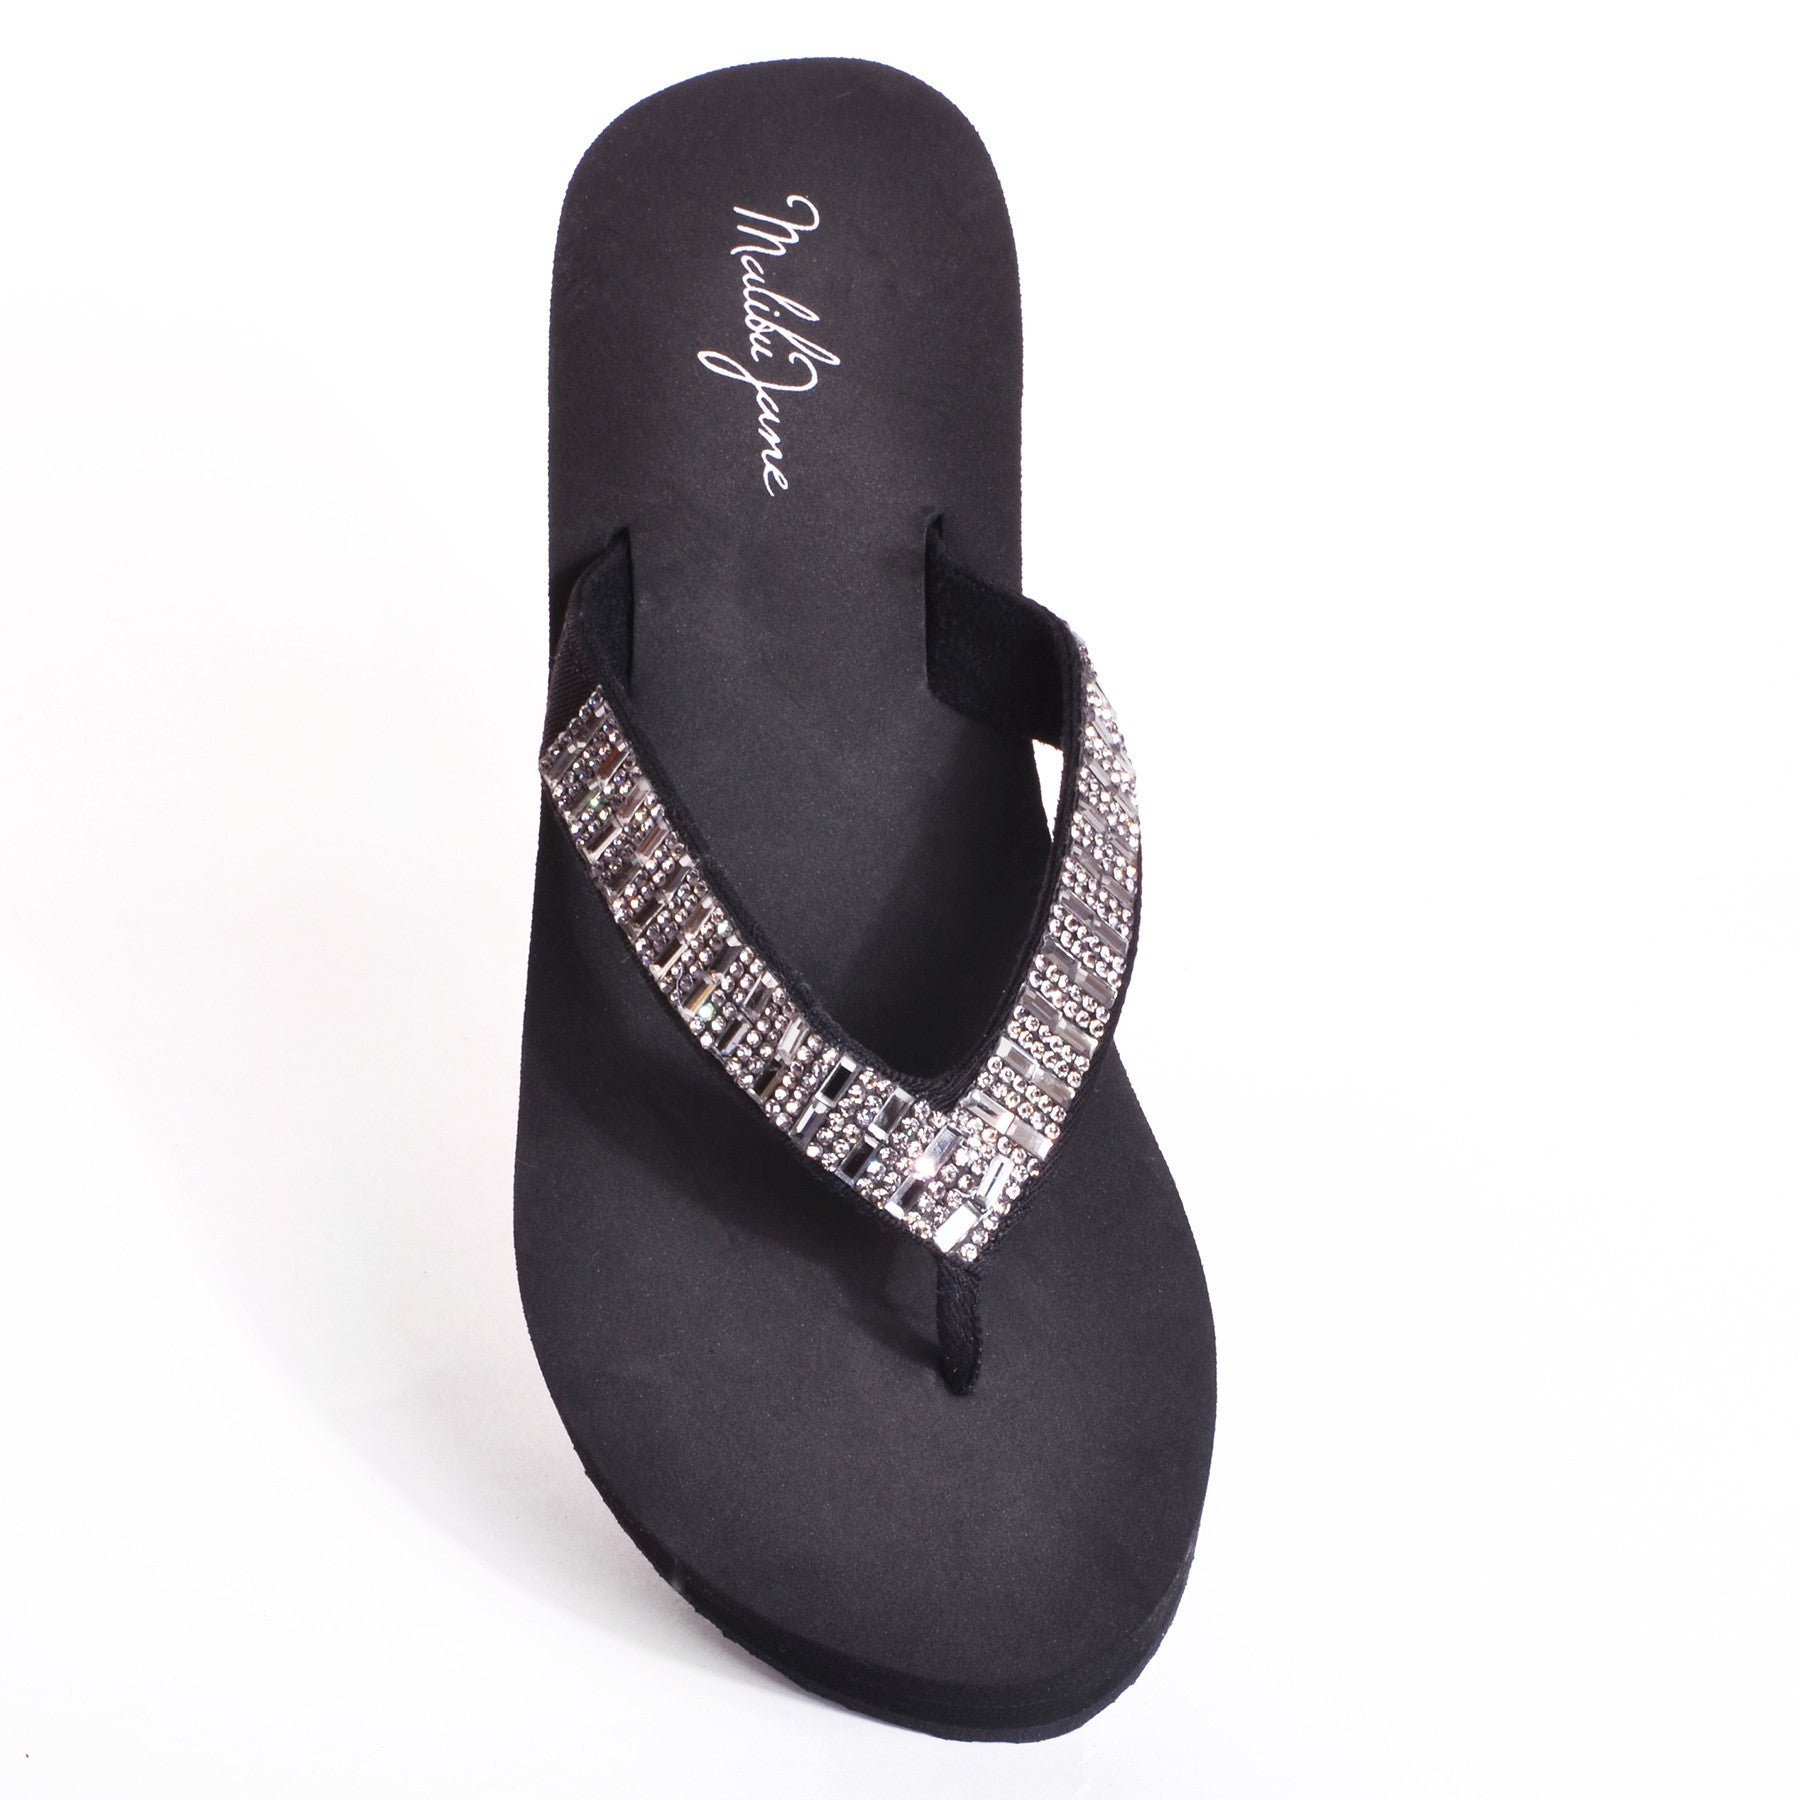 Brentwood Crystal Wedge